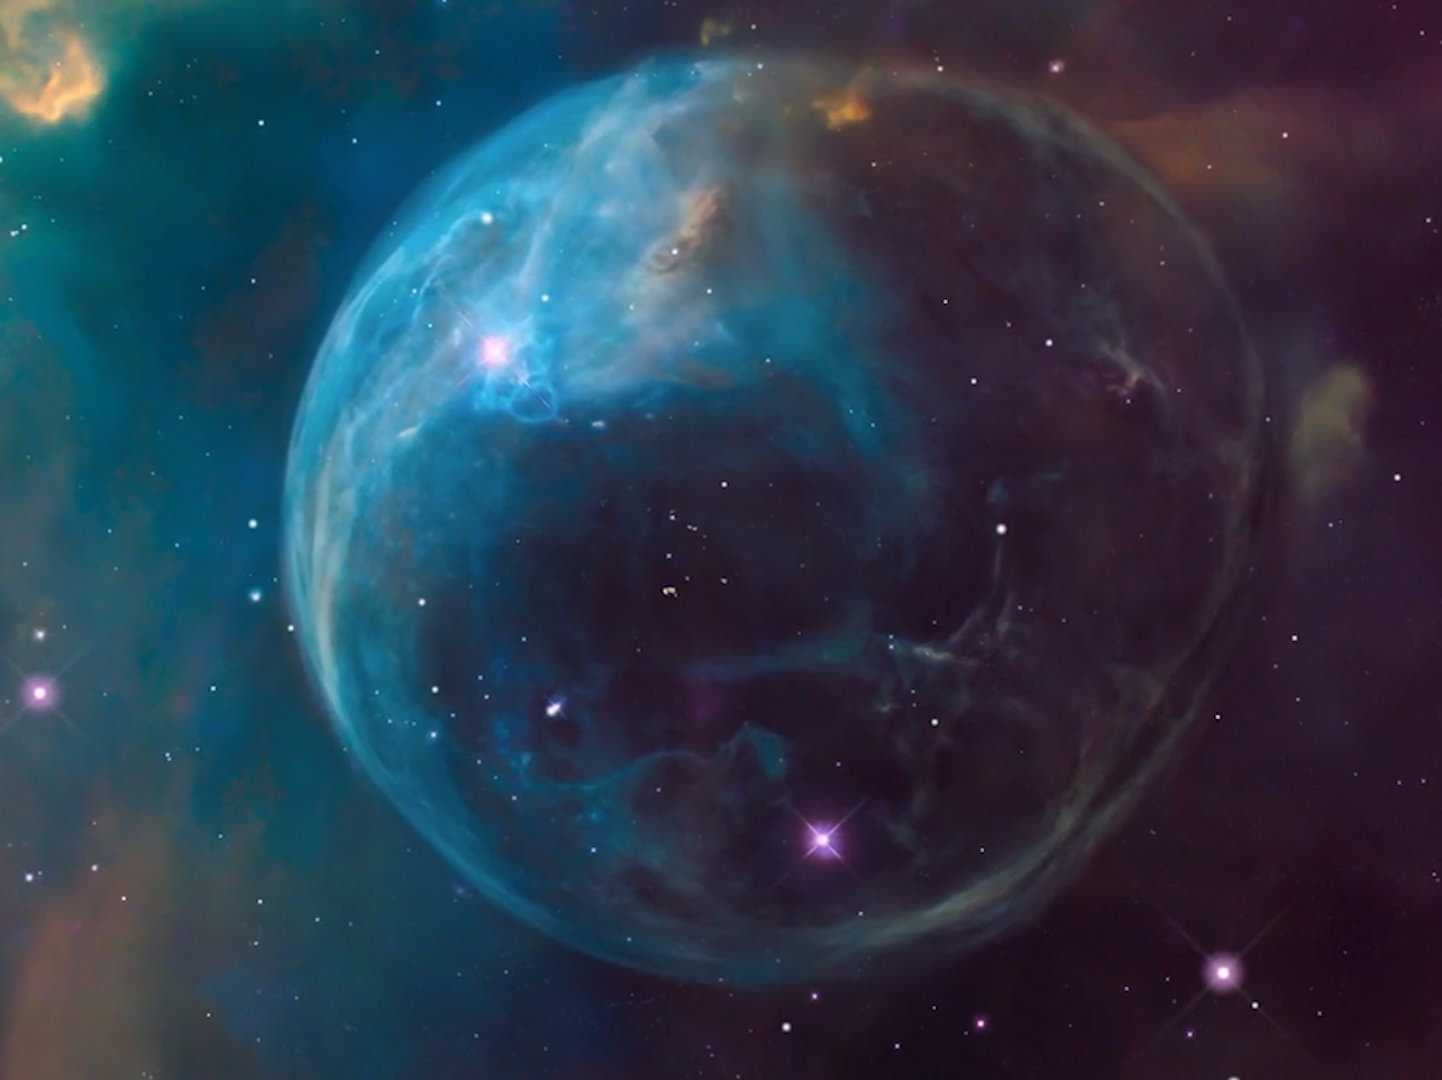 The-hubble-captured-an-incredible-image-of-a-gigantic-cosmic-soap-bubble